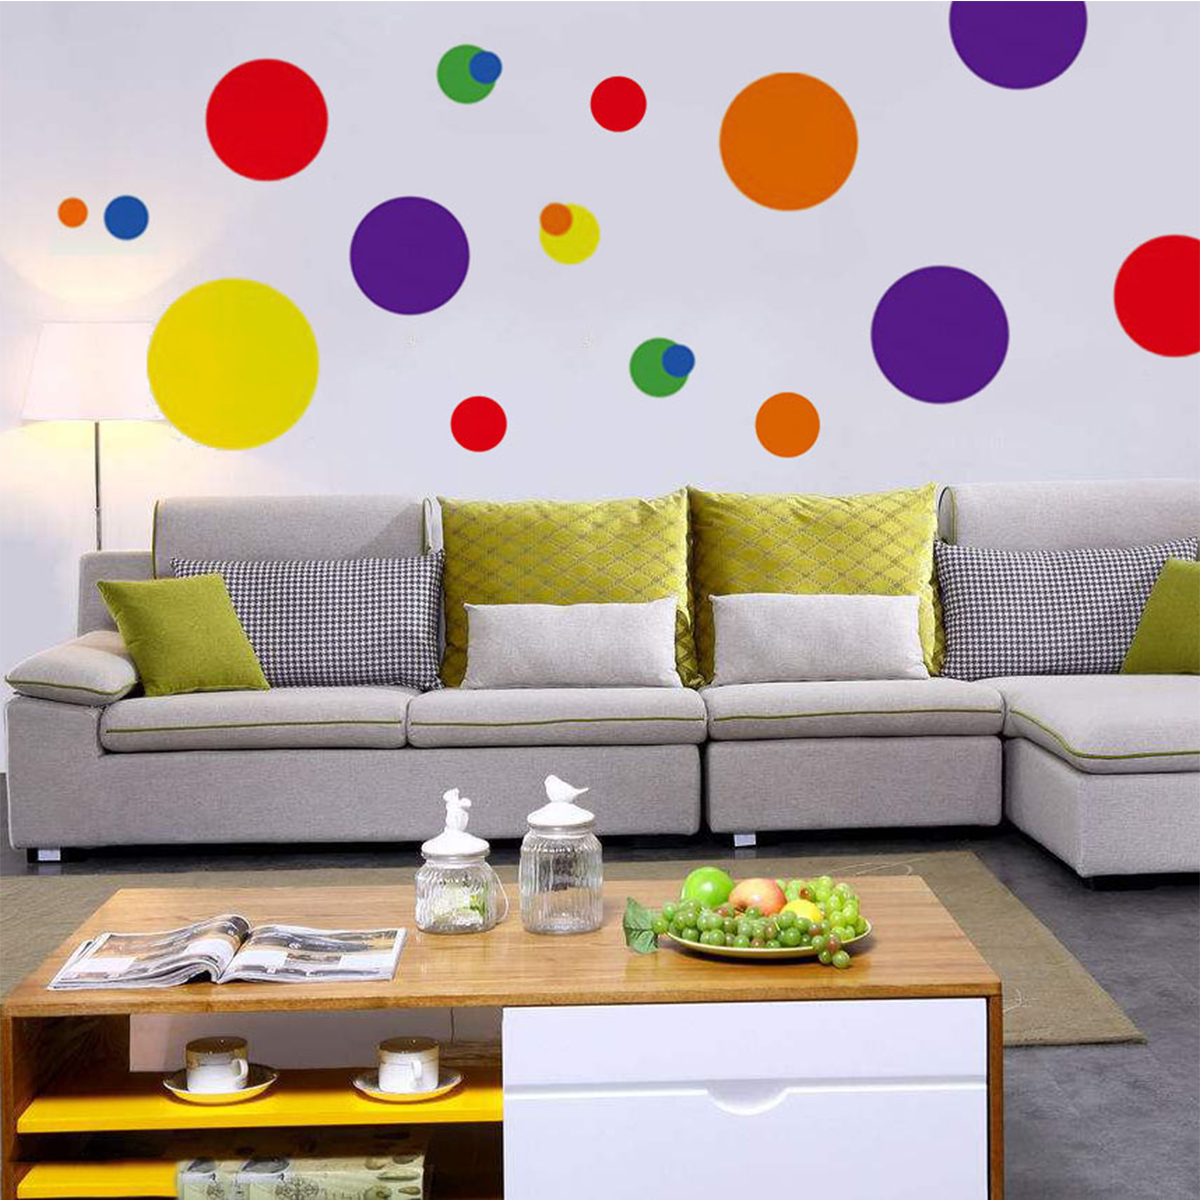 Diy Colorful Rooms: Polka Dot Wall Stickers Colorful Circles Decal DIY For